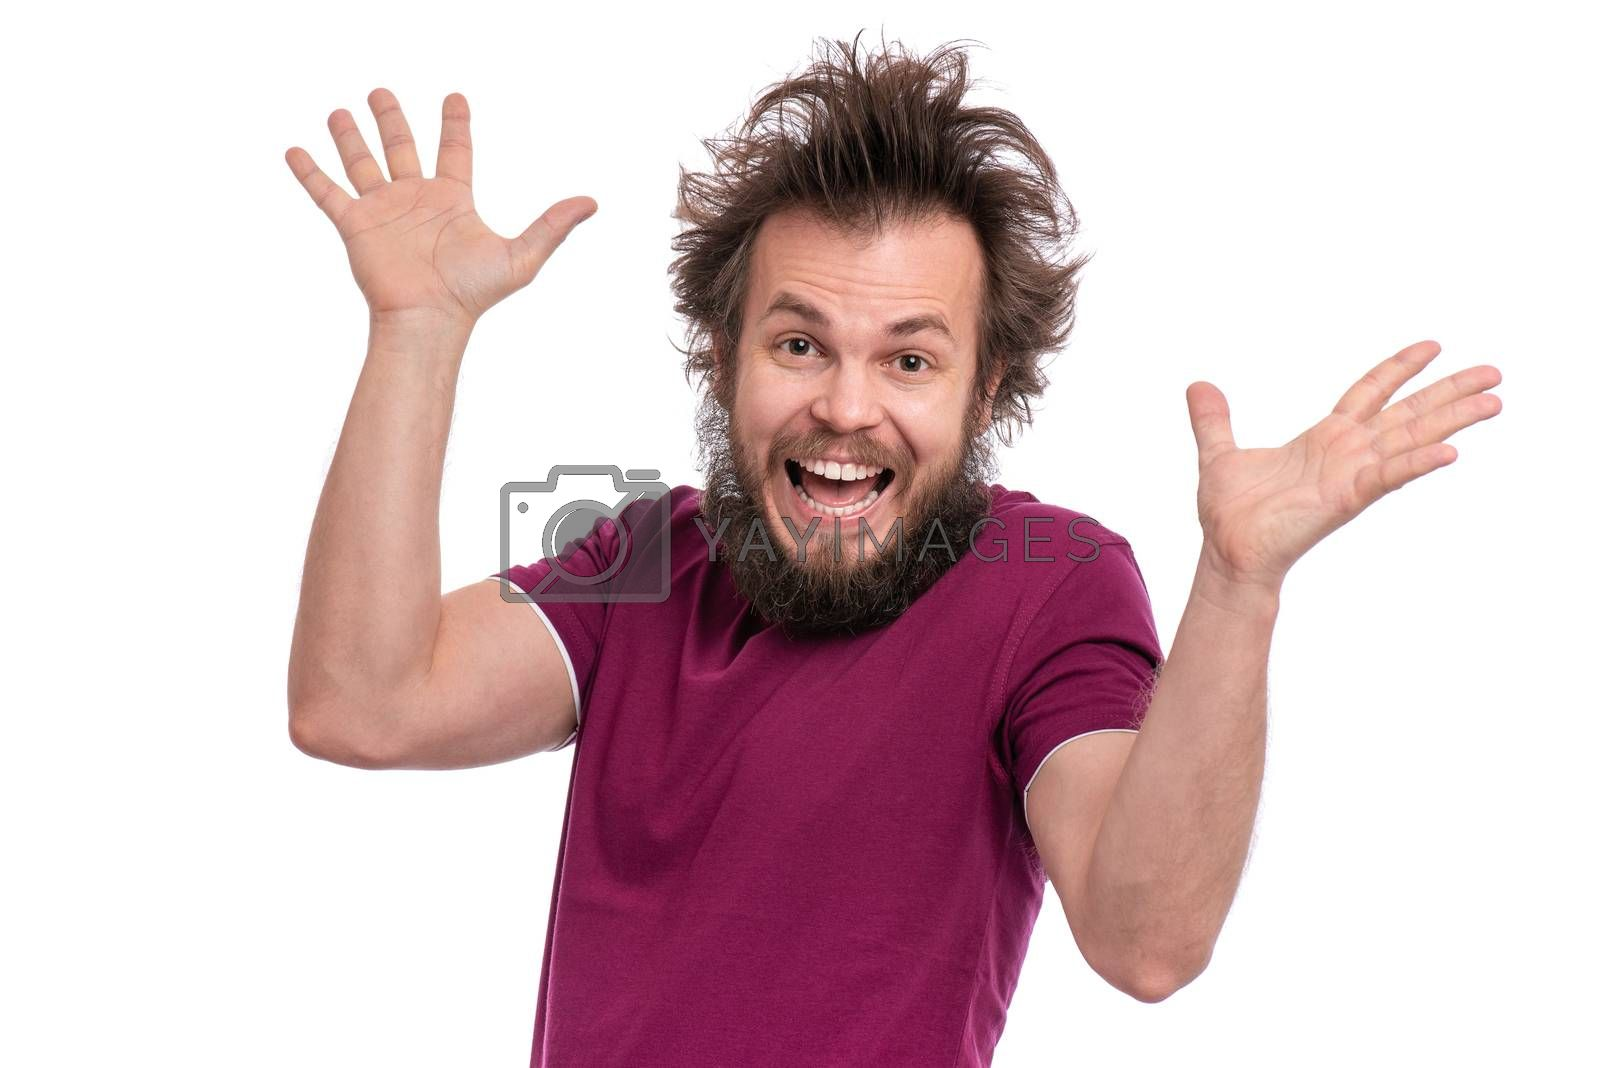 Crazy bearded Man with funny Haircut, isolated on white background. Happy guy screaming and keeping mouth open. Emotions and signs concept.